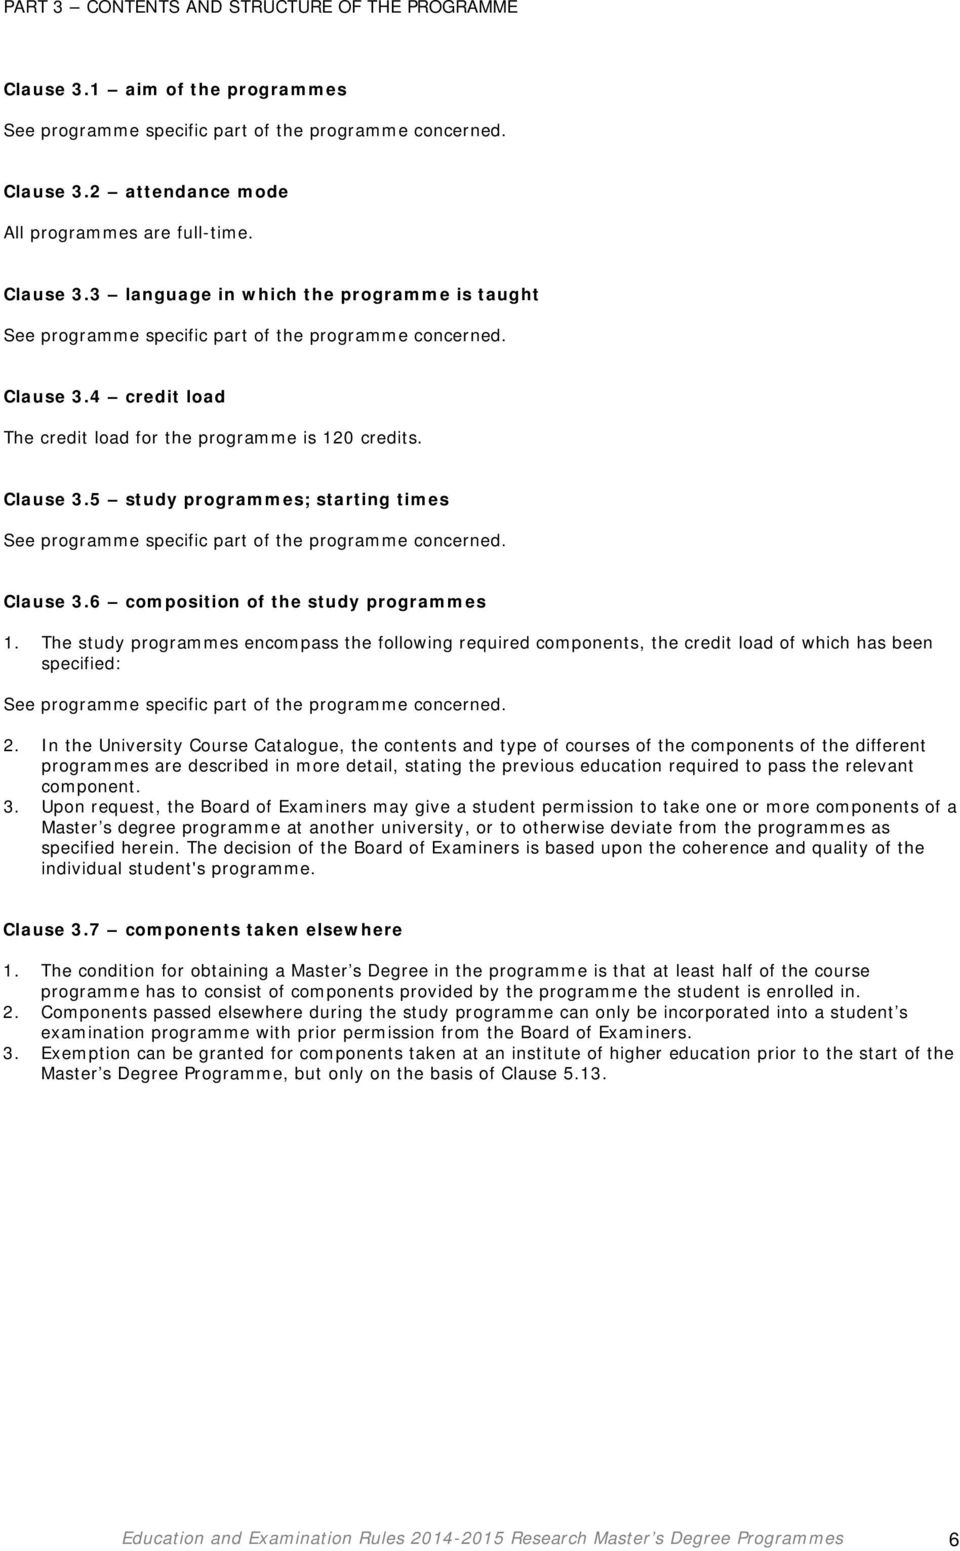 4 credit load The credit load for the programme is 120 credits. Clause 3.5 study programmes; starting times See programme specific part of the programme concerned. Clause 3.6 composition of the study programmes 1.